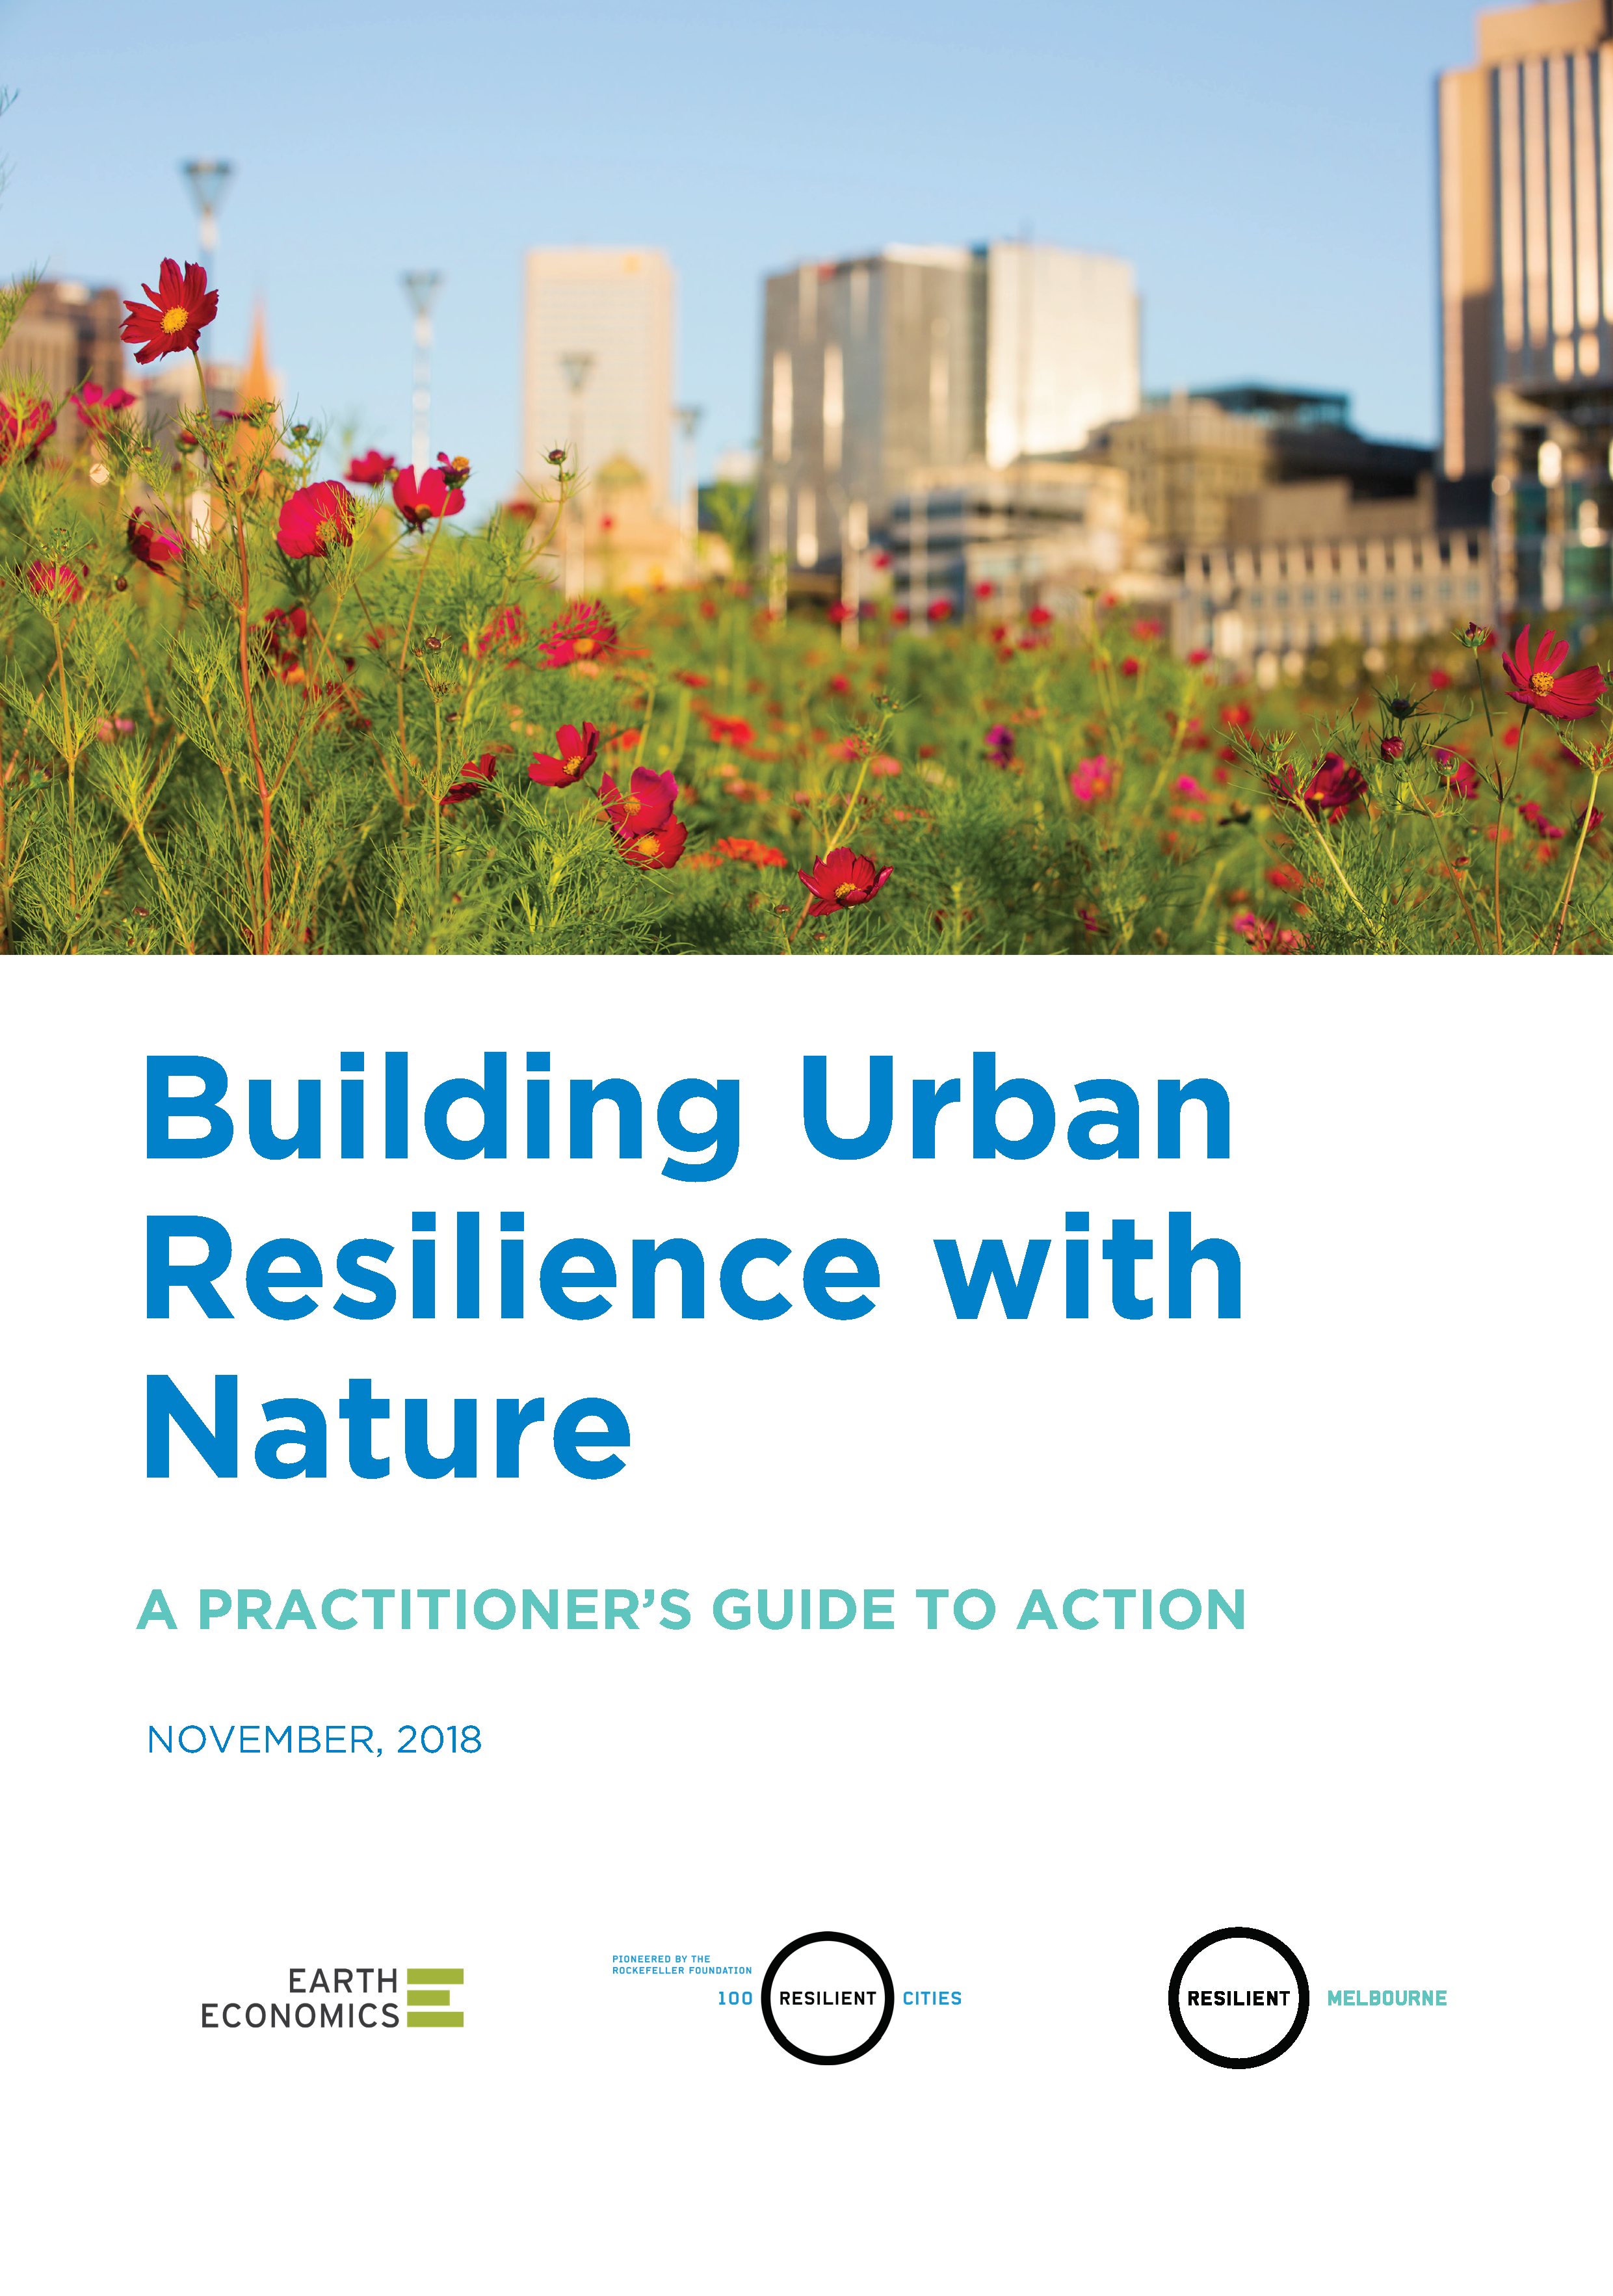 Pages from BuildingUrbanResiliencewithNature_100RC-EarthEconomics_Nov2018.png